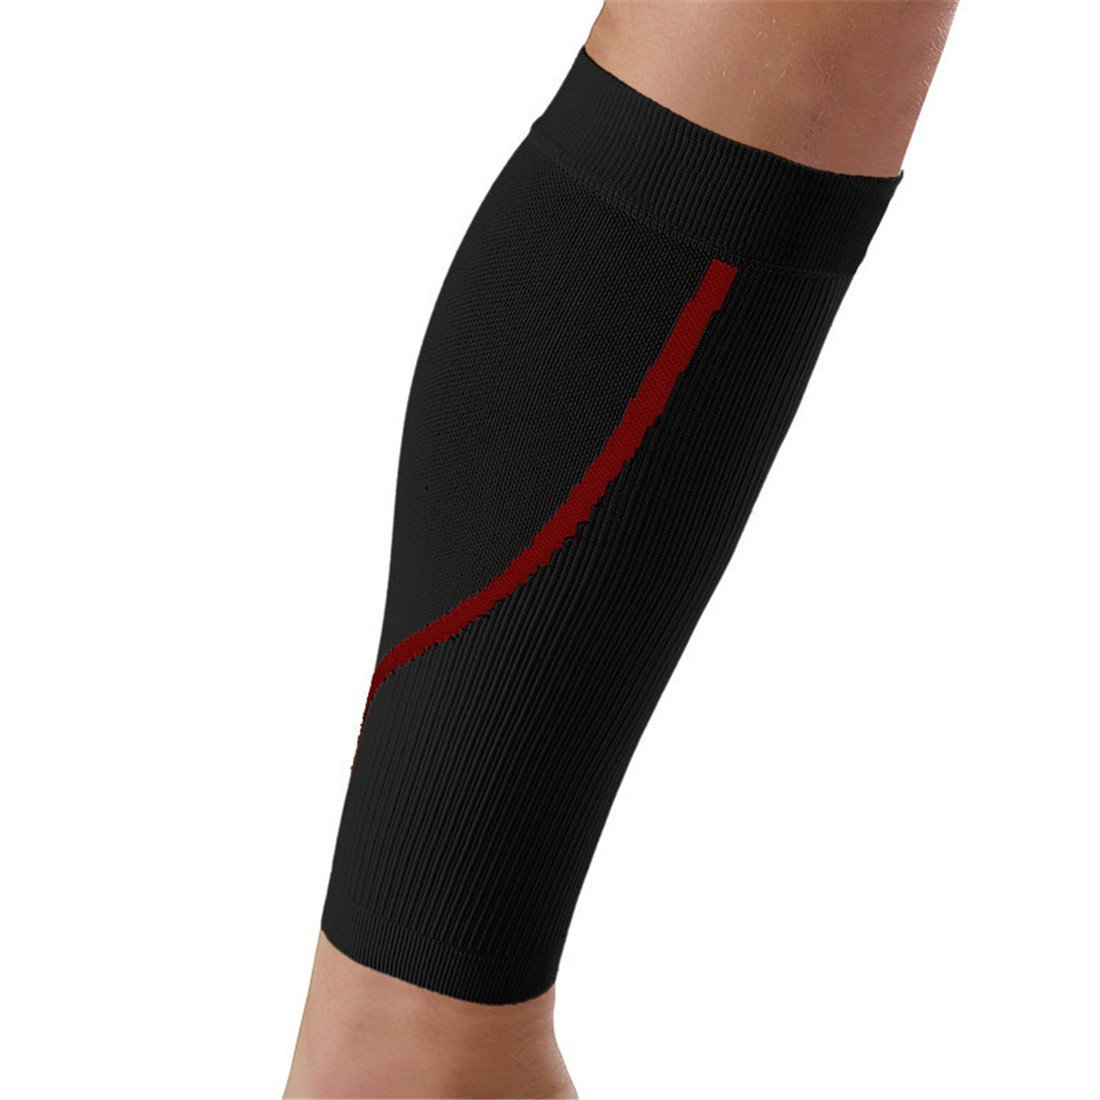 fb3ce6ebce Get Quotations · ChicSoleil Calf & Shin Supports-Tight Calf Compression  Sleeves Guard&Protect Shins Calves Prevent Swelling,